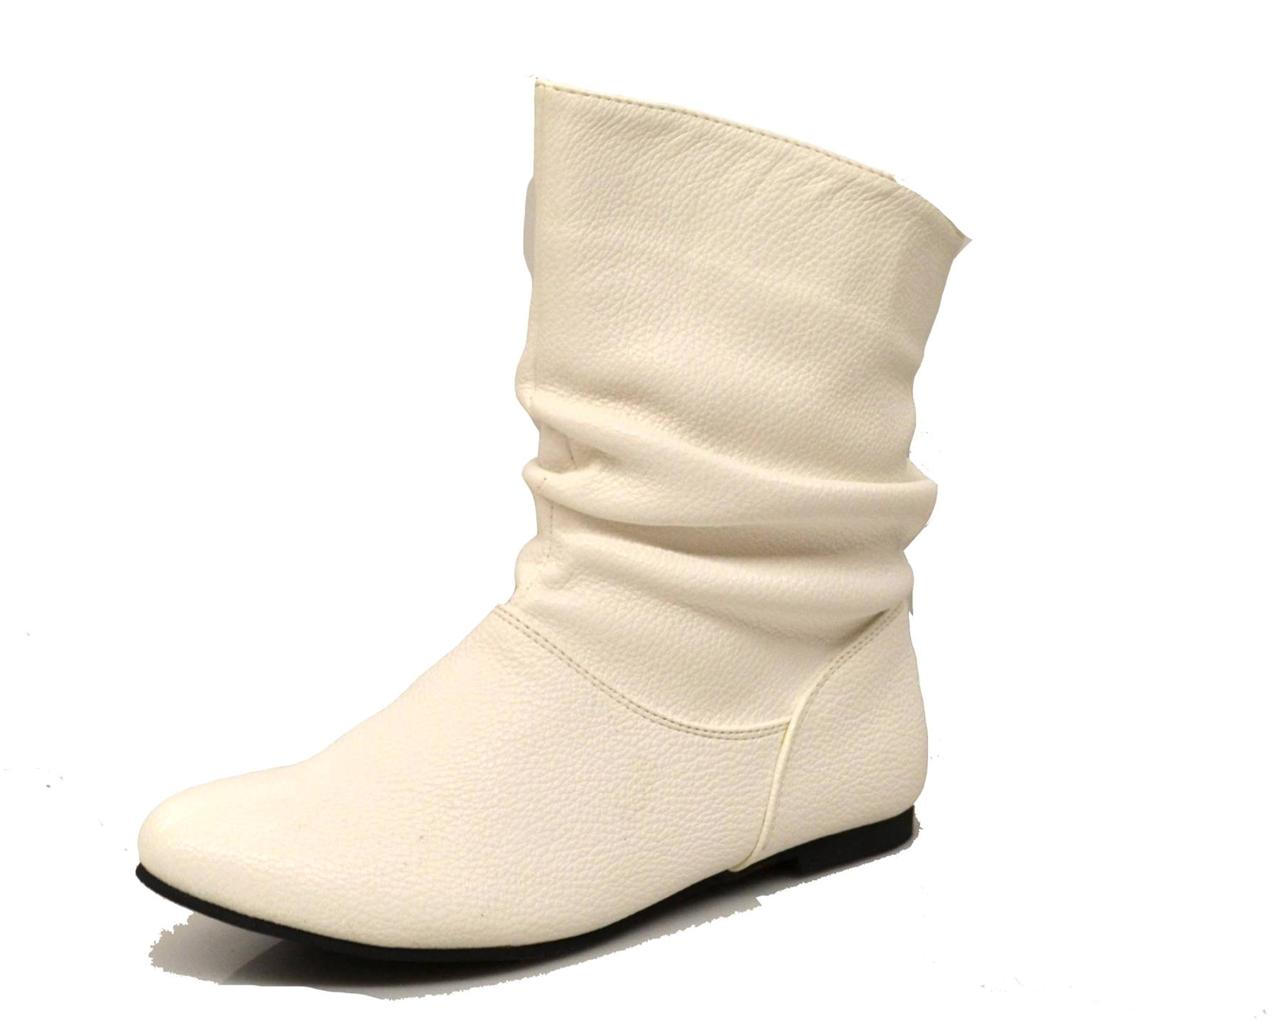 Slouch boots - deals on 1001 Blocks